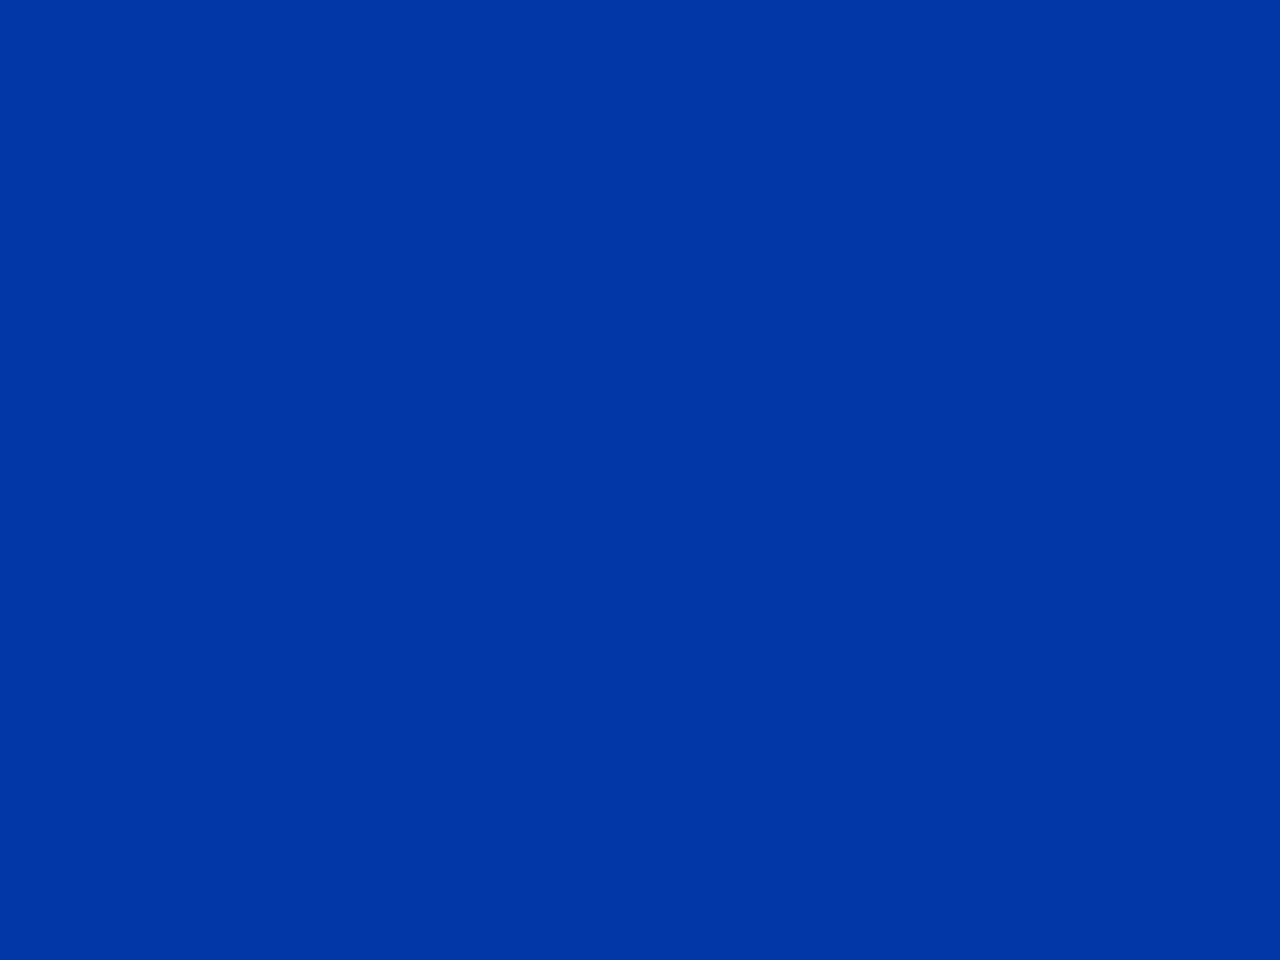 1280x960 Royal Azure Solid Color Background